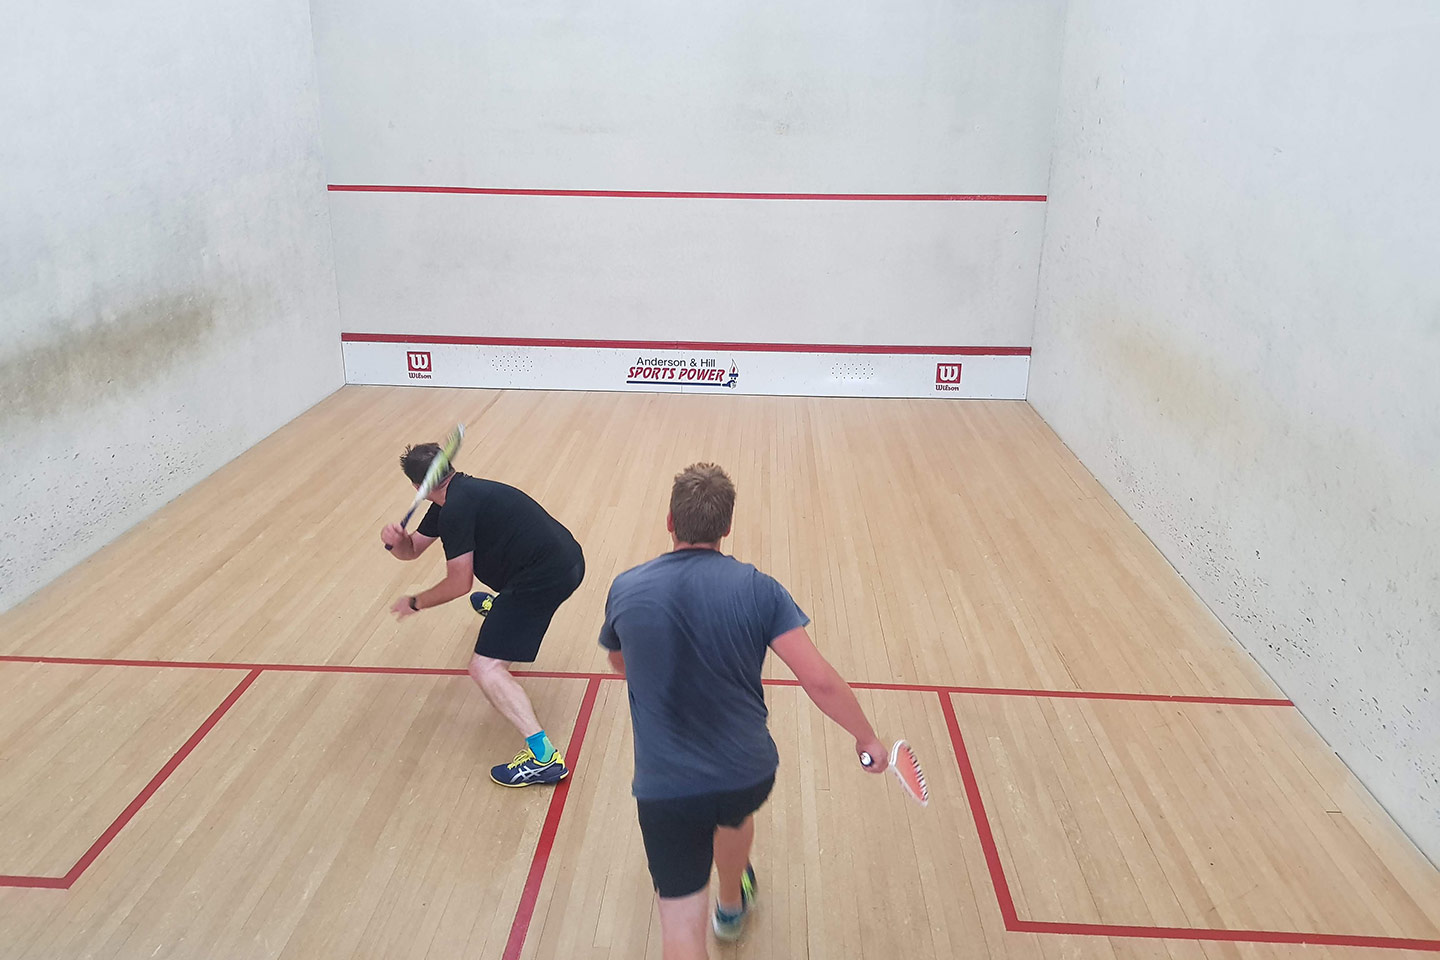 https://www.chchfootballsquash.co.nz/wp-content/uploads/2021/04/competition2.jpg